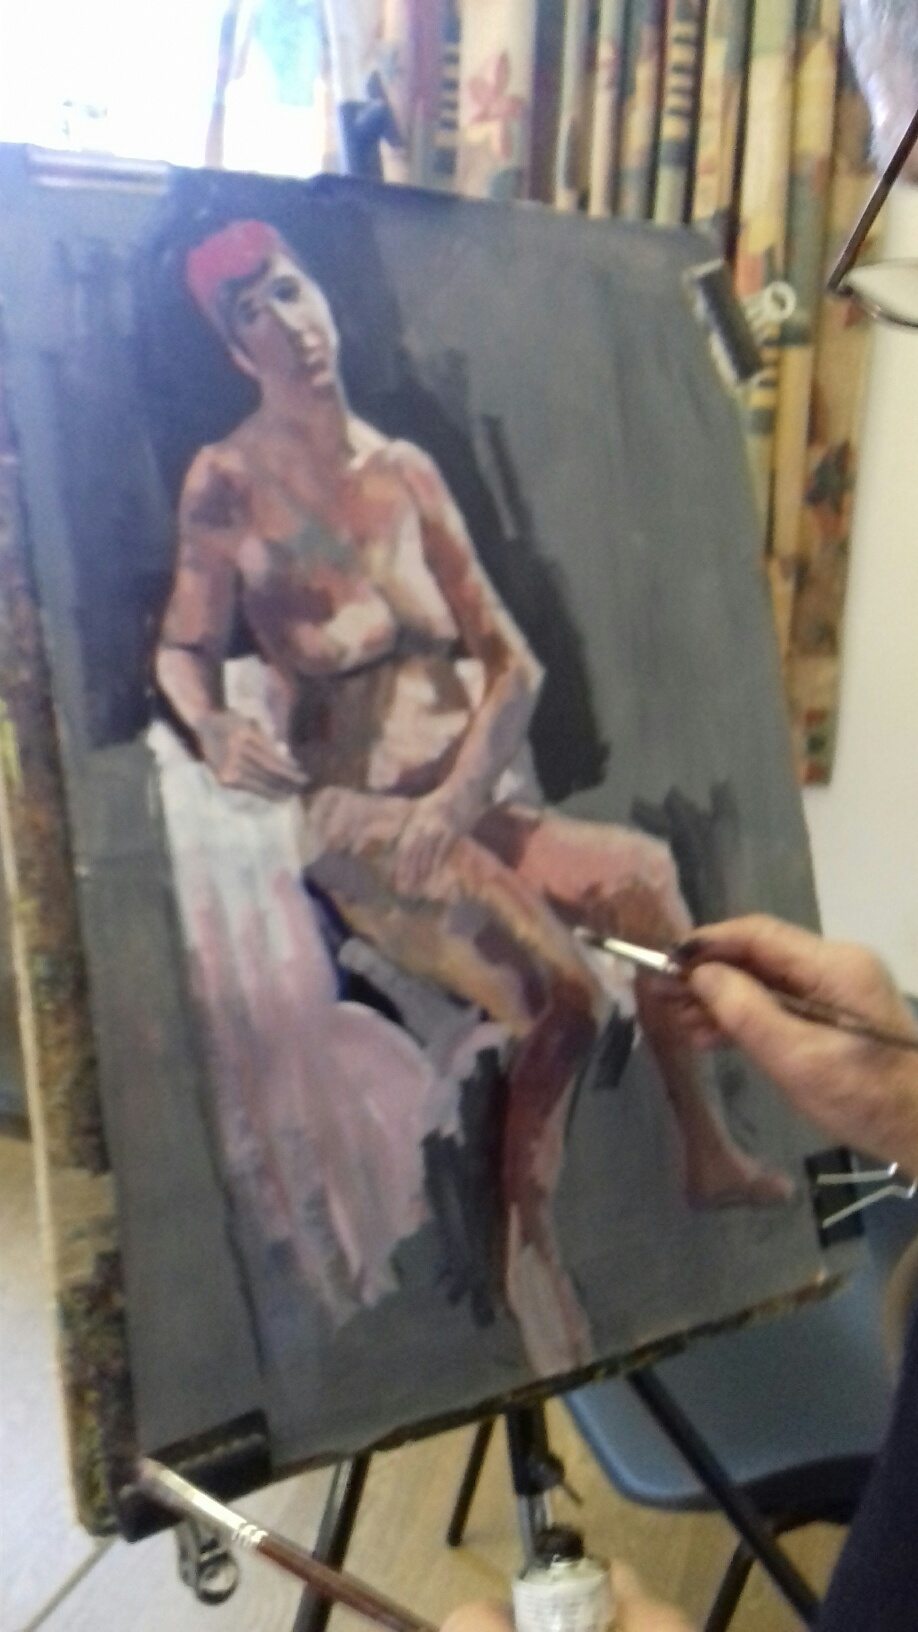 learn life drawing, classes near me, sefton, art class, liverpool, southport, formby, sefton, merseyside, preston, ormskirk, lancashire,